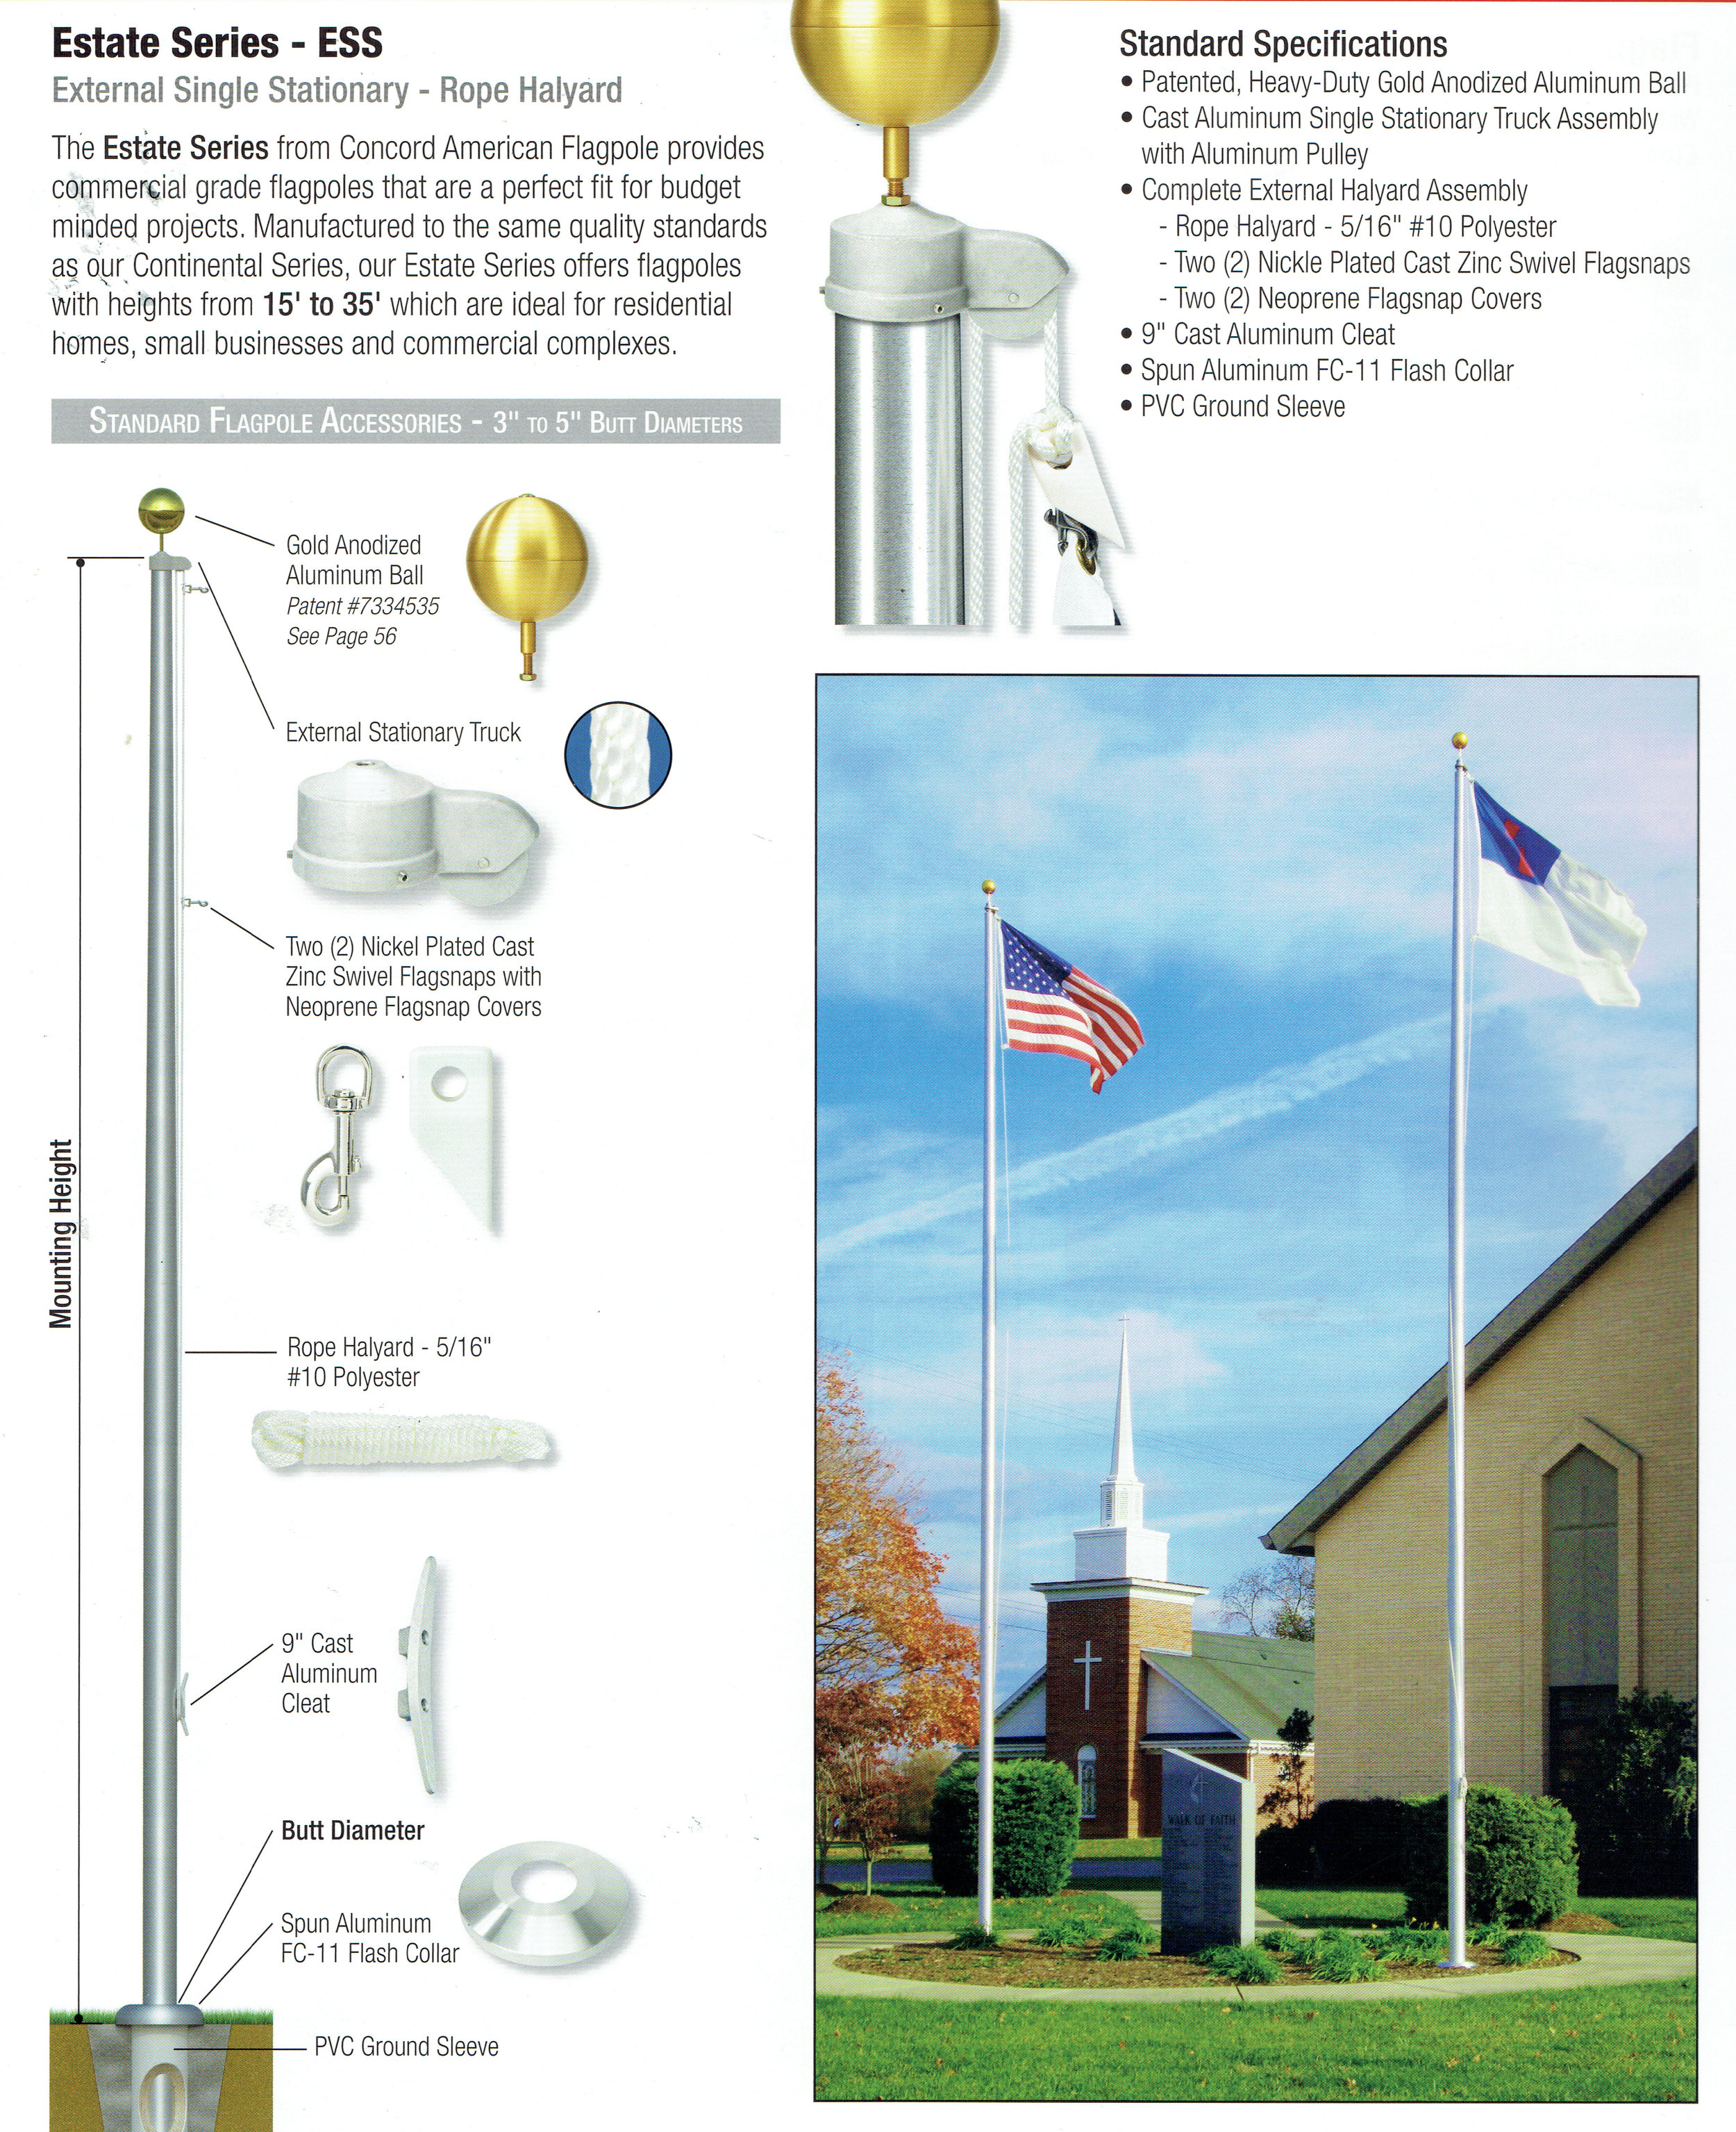 Pennant Shop - One of our most popular outdoor poles.For small businesses, churches and homes.Please call or write for more information.(504) 837 8420 Email: pennant700@yahoo.comSERVING THE NEW ORLEANS AREAFOR OVER 87 YEARS